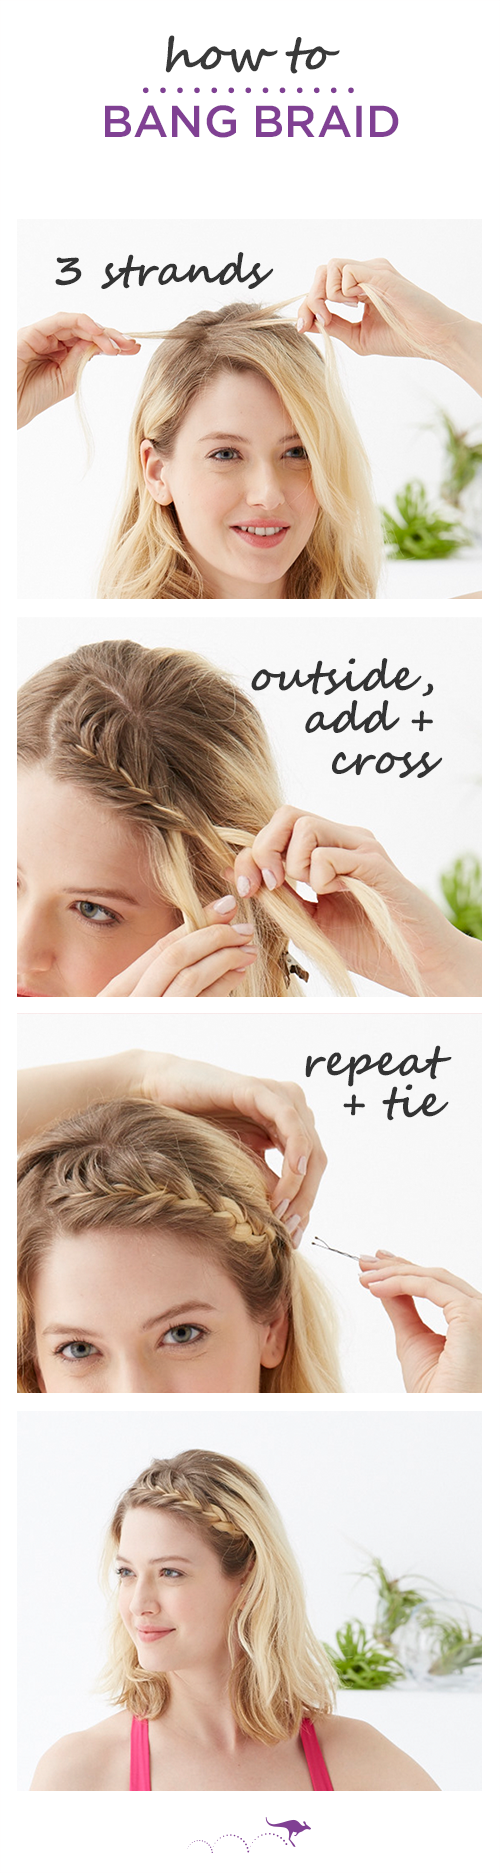 How to bang braid ideal for short hair or bangs keep hair out how to bang braid ideal for short hair or bangs keep hair out urmus Image collections